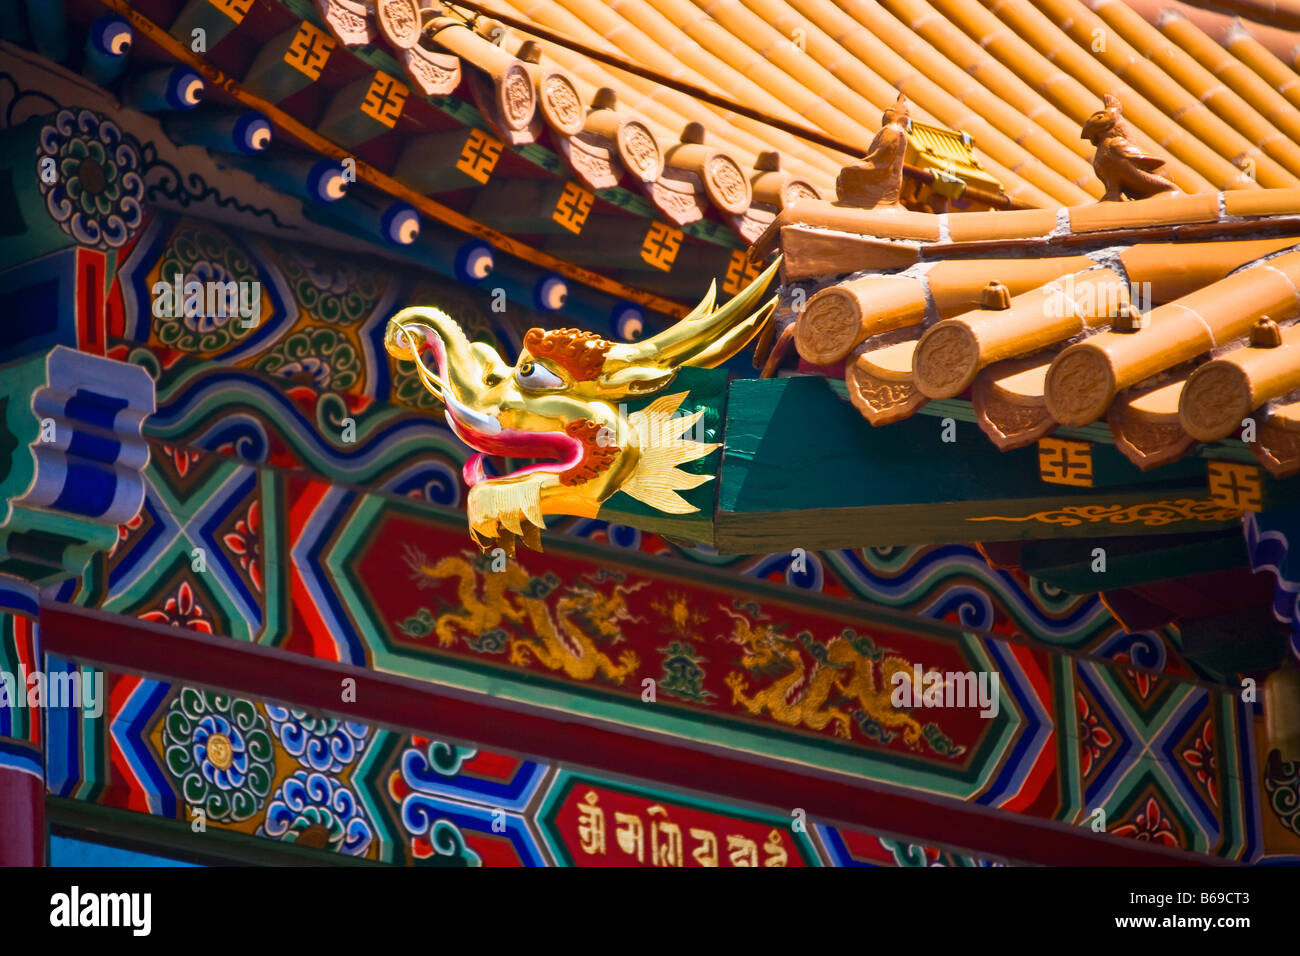 Sculpture on the roof of a temple, Da Zhao Temple, Hohhot, Inner Mongolia, China - Stock Image